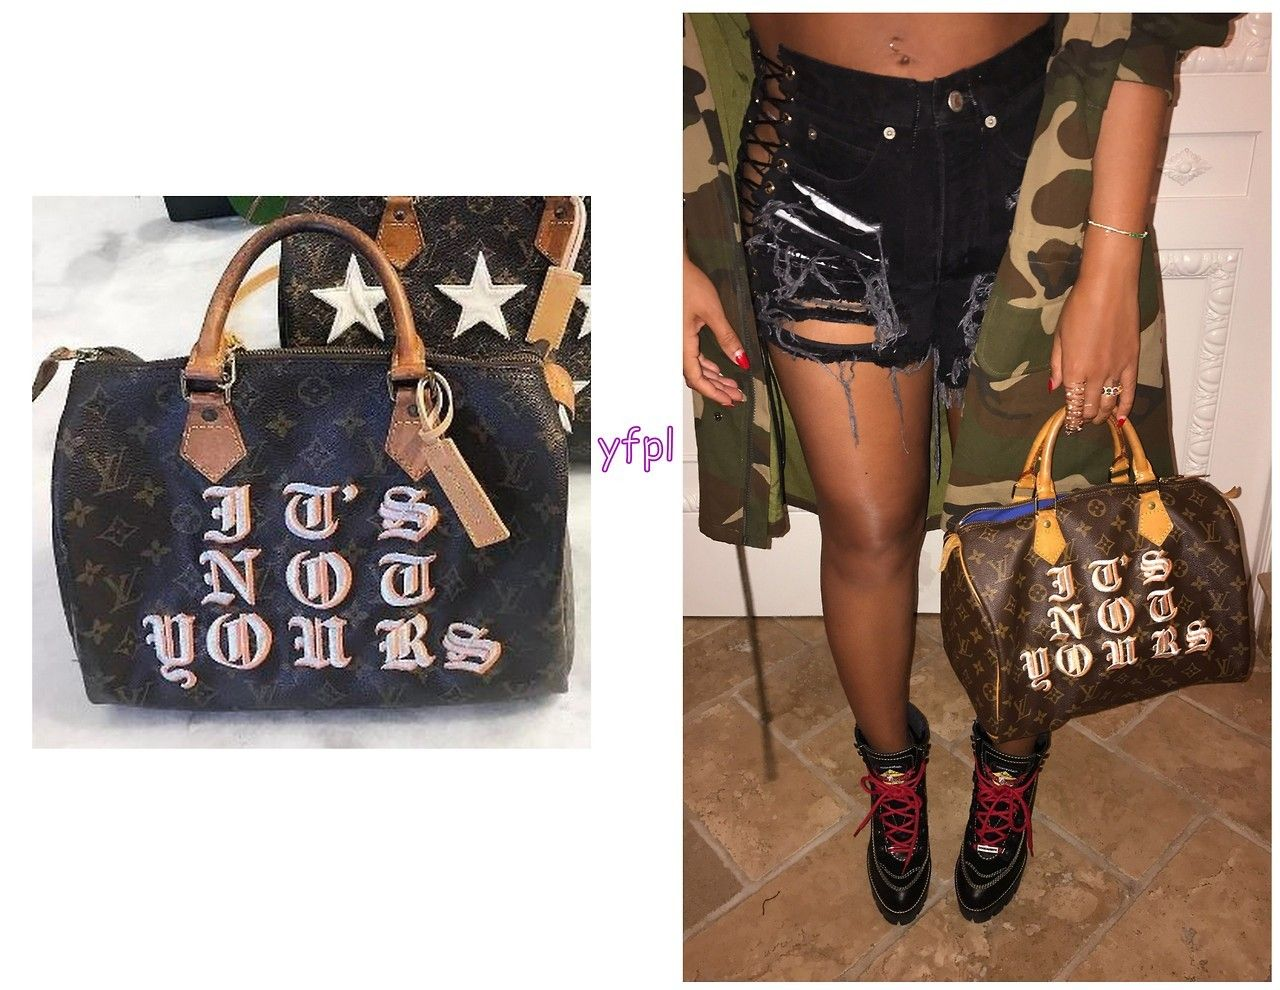 Beyoncé holding LOUIS VUITTON Speedy 30 Bag Customized by MEDIUMRARE PRODUCT